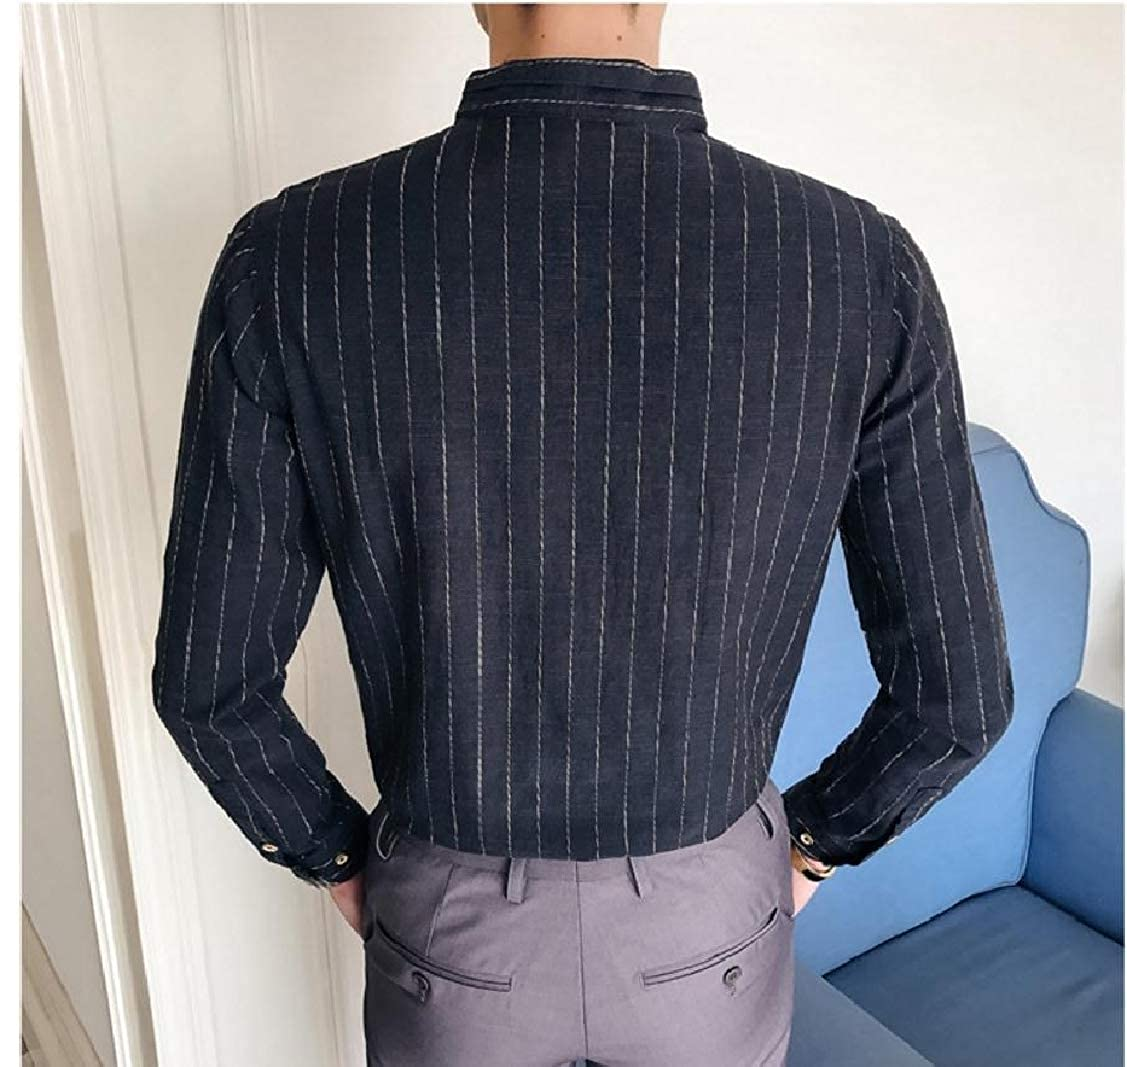 Coolred-Men Office Comfort Striped Cotton Stand-up Collar Collar Shirt